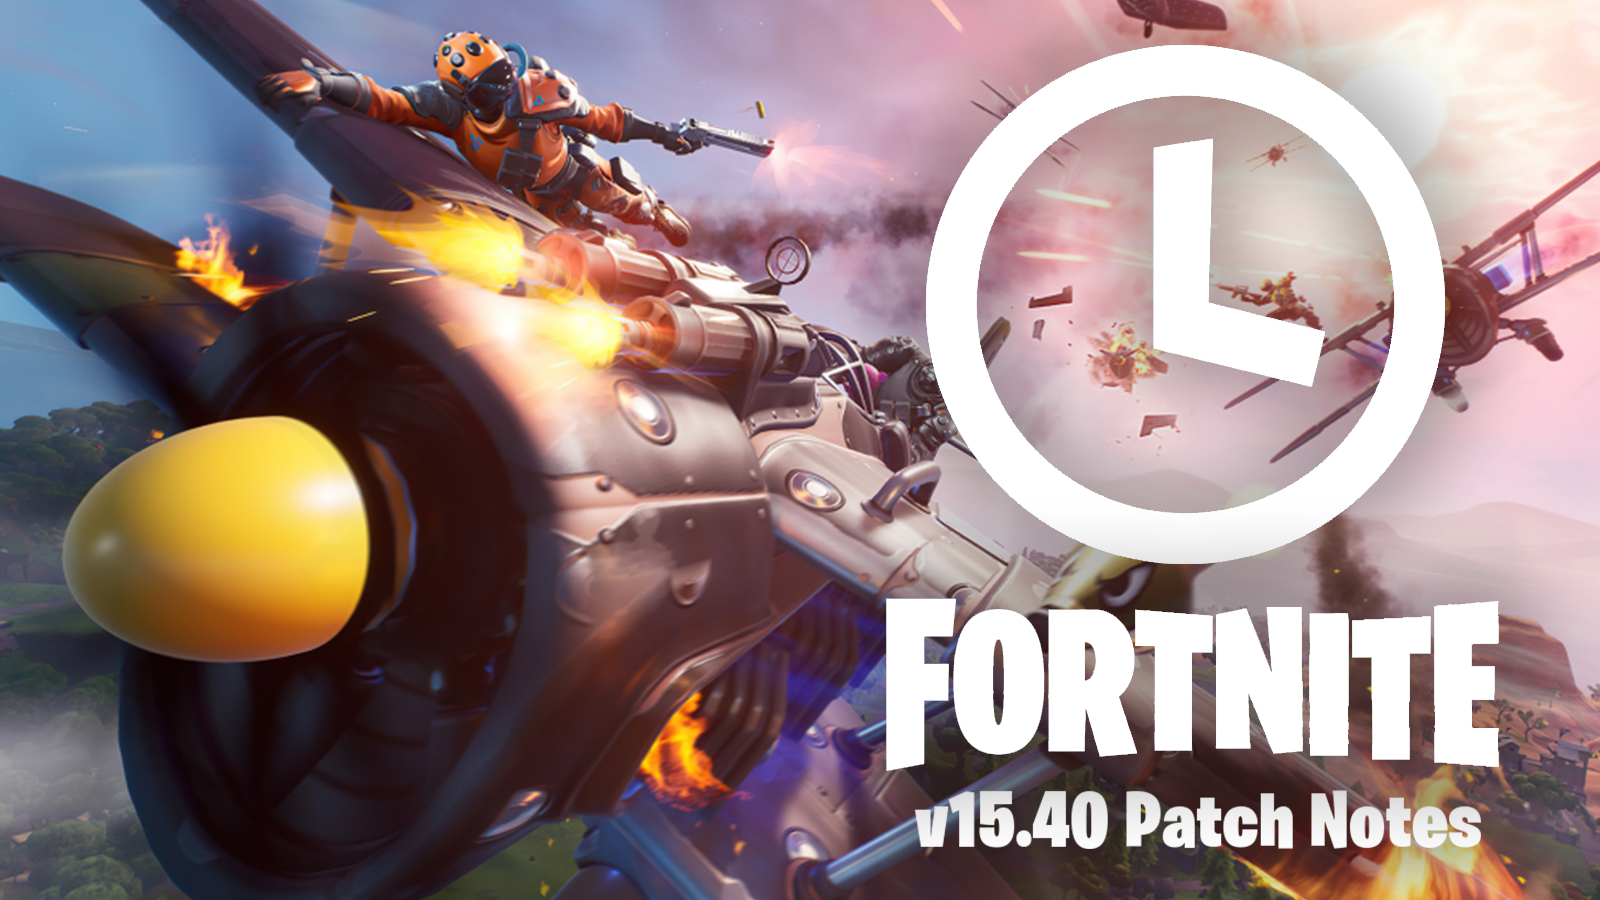 Fortnite characters battle in Air Royale LTM over update 15.40 patch notes.